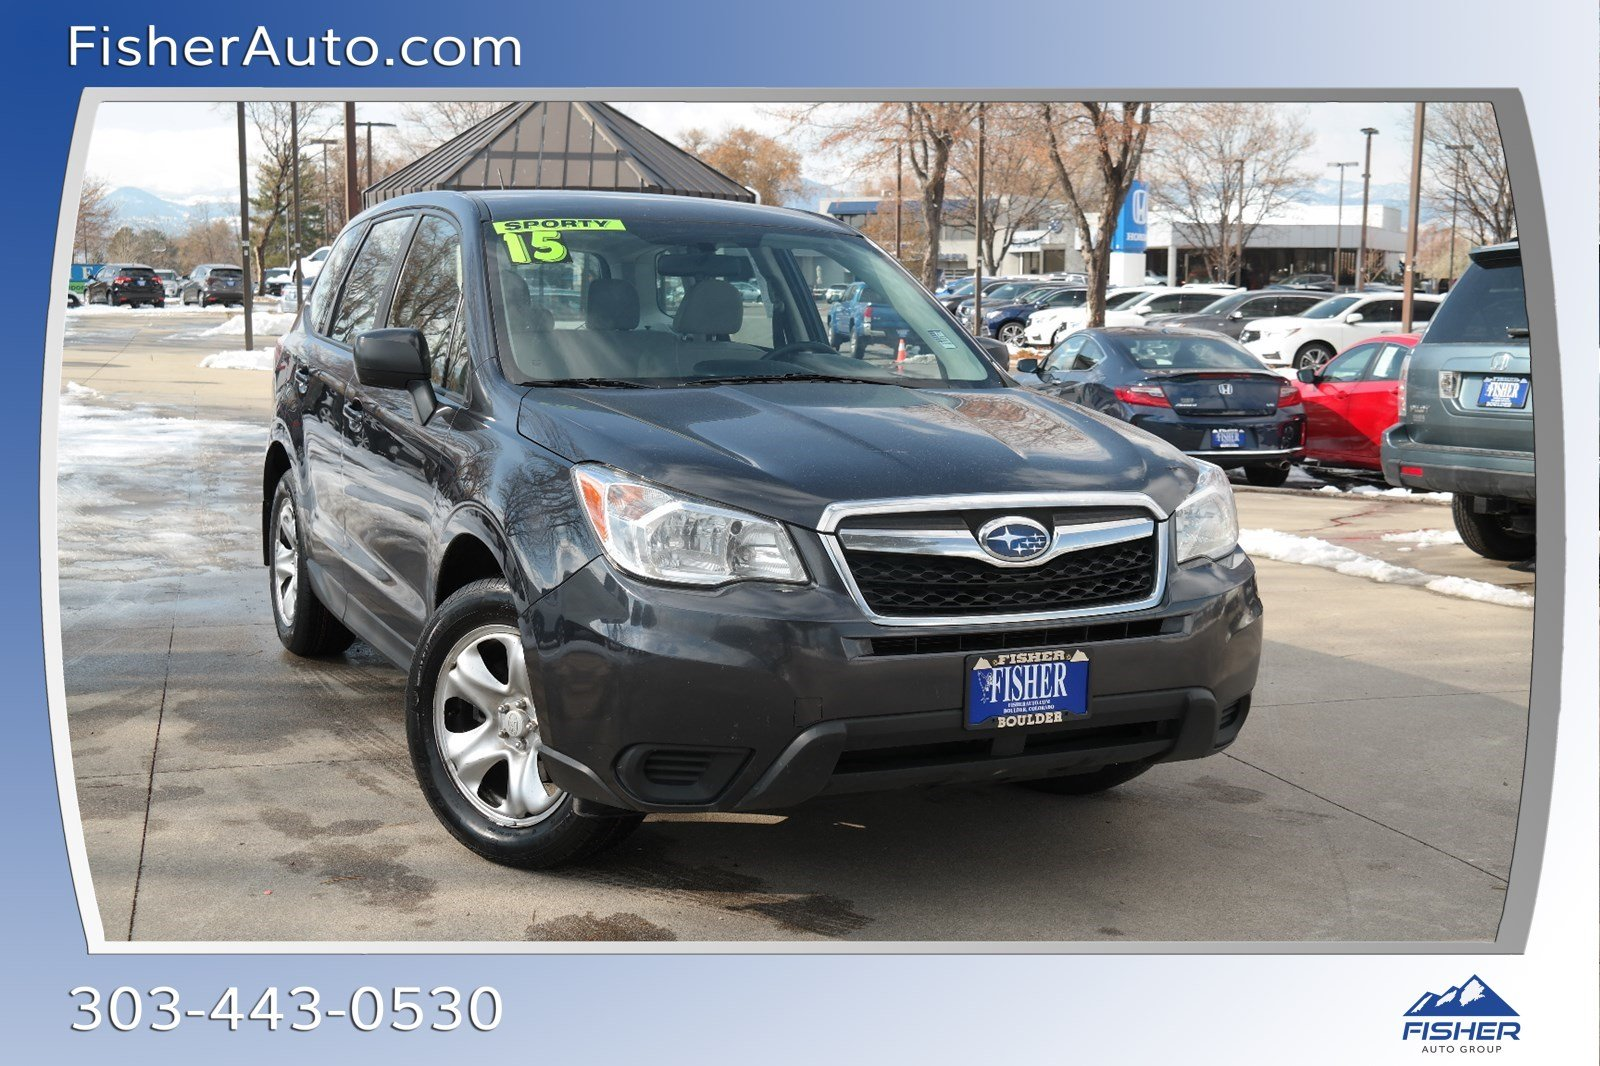 Pre-Owned 2015 Subaru Forester 4dr Man 2.5i PZEV